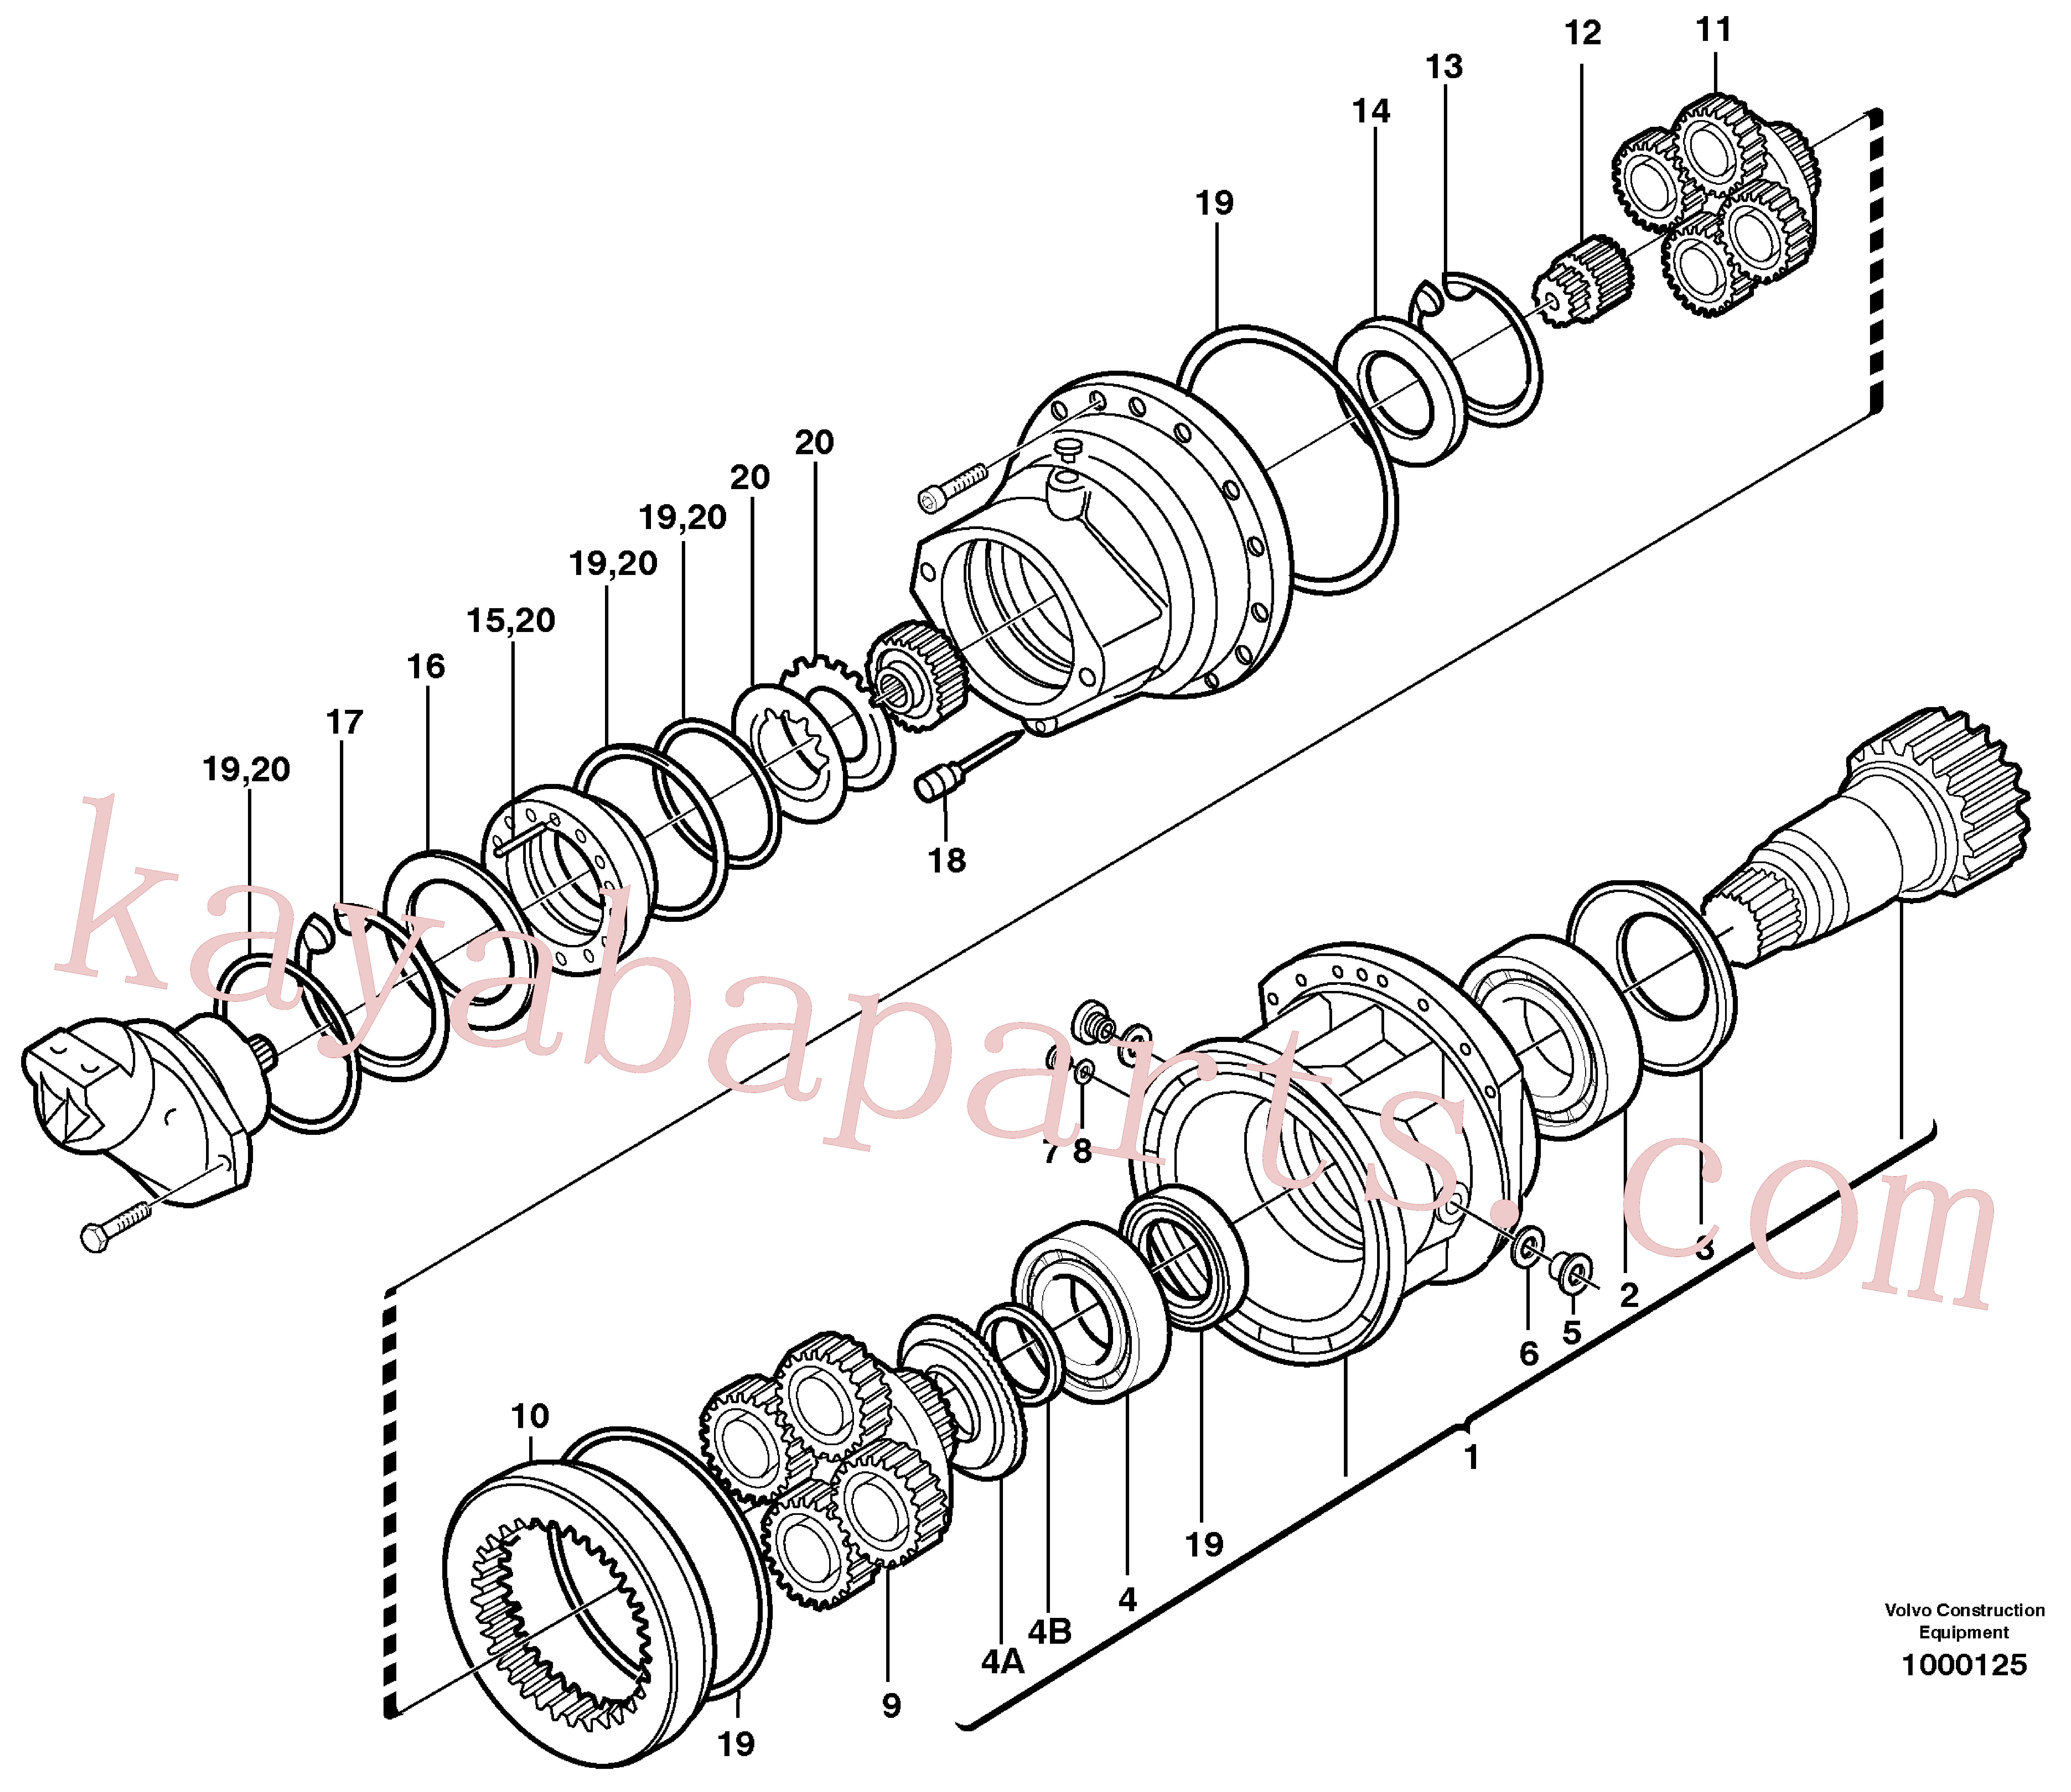 VOE11703756 for Volvo Swing gearbox(1000125 assembly)